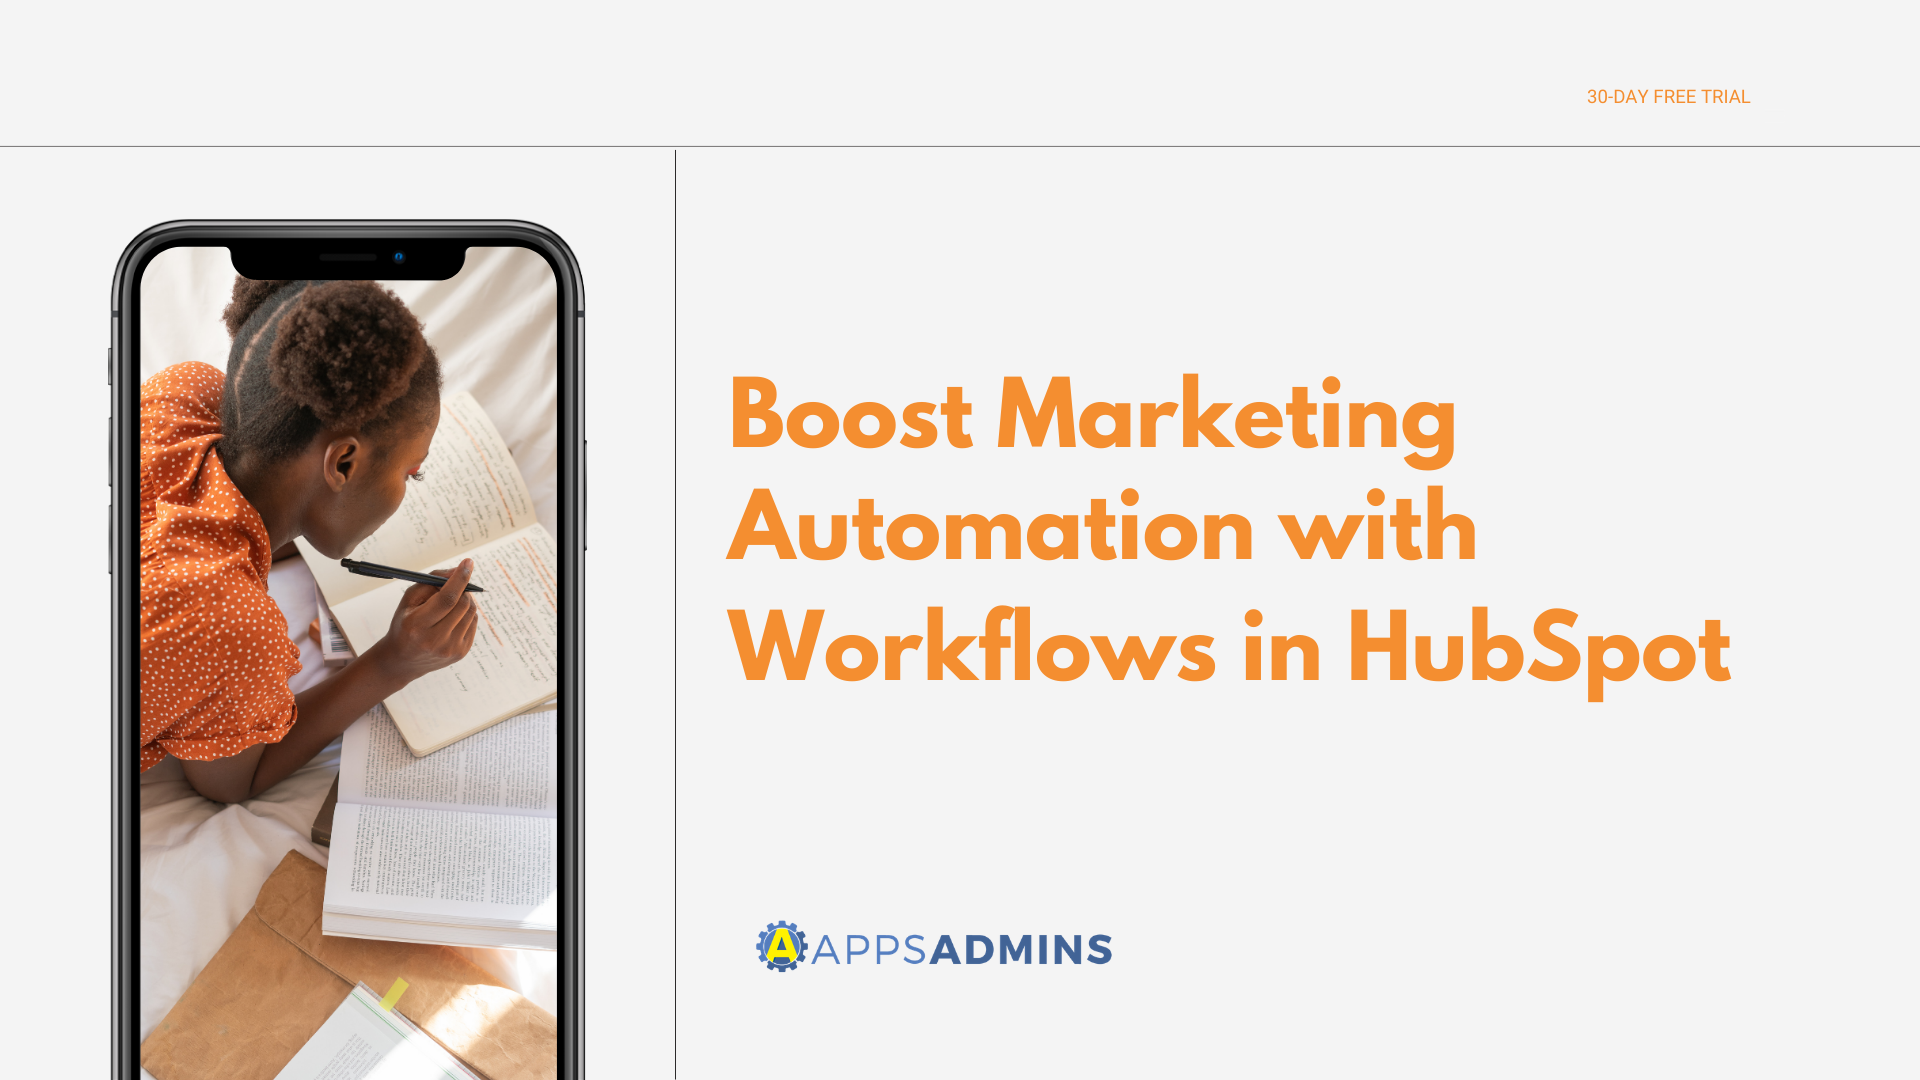 hubspot-workflows-header.jpg